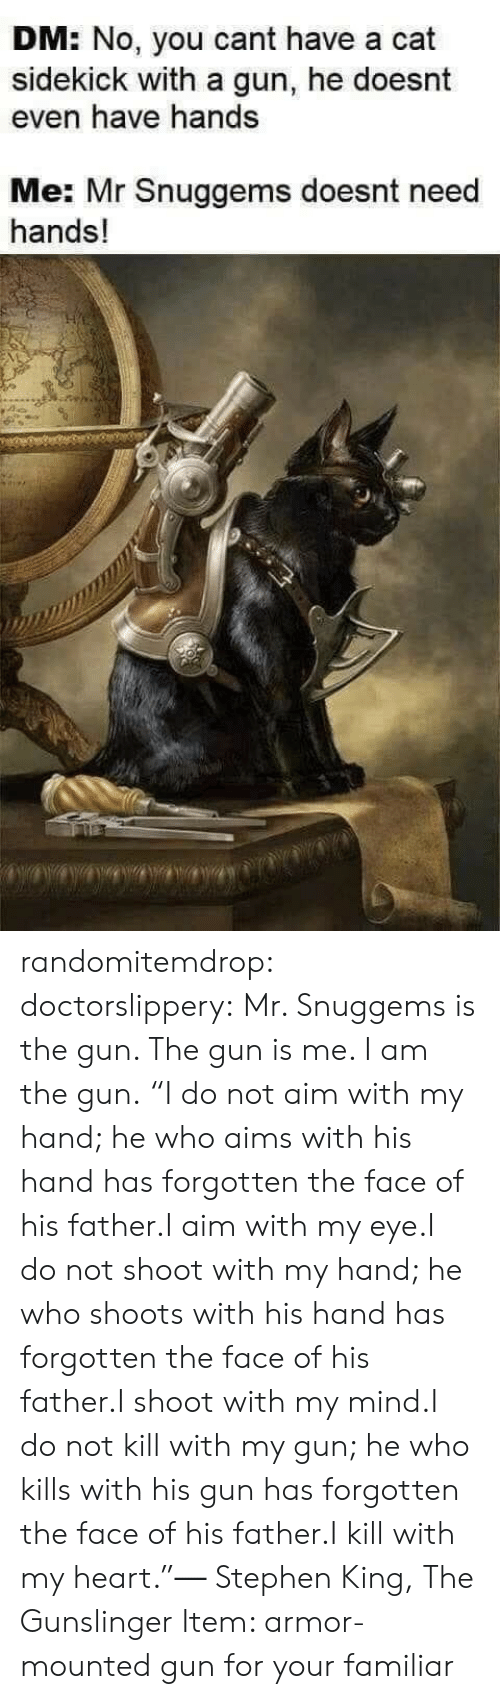 "Stephen, Tumblr, and Work: DM: No, you cant have a cat  sidekick with a gun, he doesnt  even have hands  Me: Mr Snuggems doesnt need  hands! randomitemdrop: doctorslippery:  Mr. Snuggems is the gun. The gun is me. I am the gun.   ""I do not aim with my hand; he who aims with his hand has forgotten the face of his father.I aim with my eye.I do not shoot with my hand; he who shoots with his hand has forgotten the face of his father.I shoot with my mind.I do not kill with my gun; he who kills with his gun has forgotten the face of his father.I kill with my heart.""― Stephen King, The Gunslinger    Item: armor-mounted gun for your familiar"